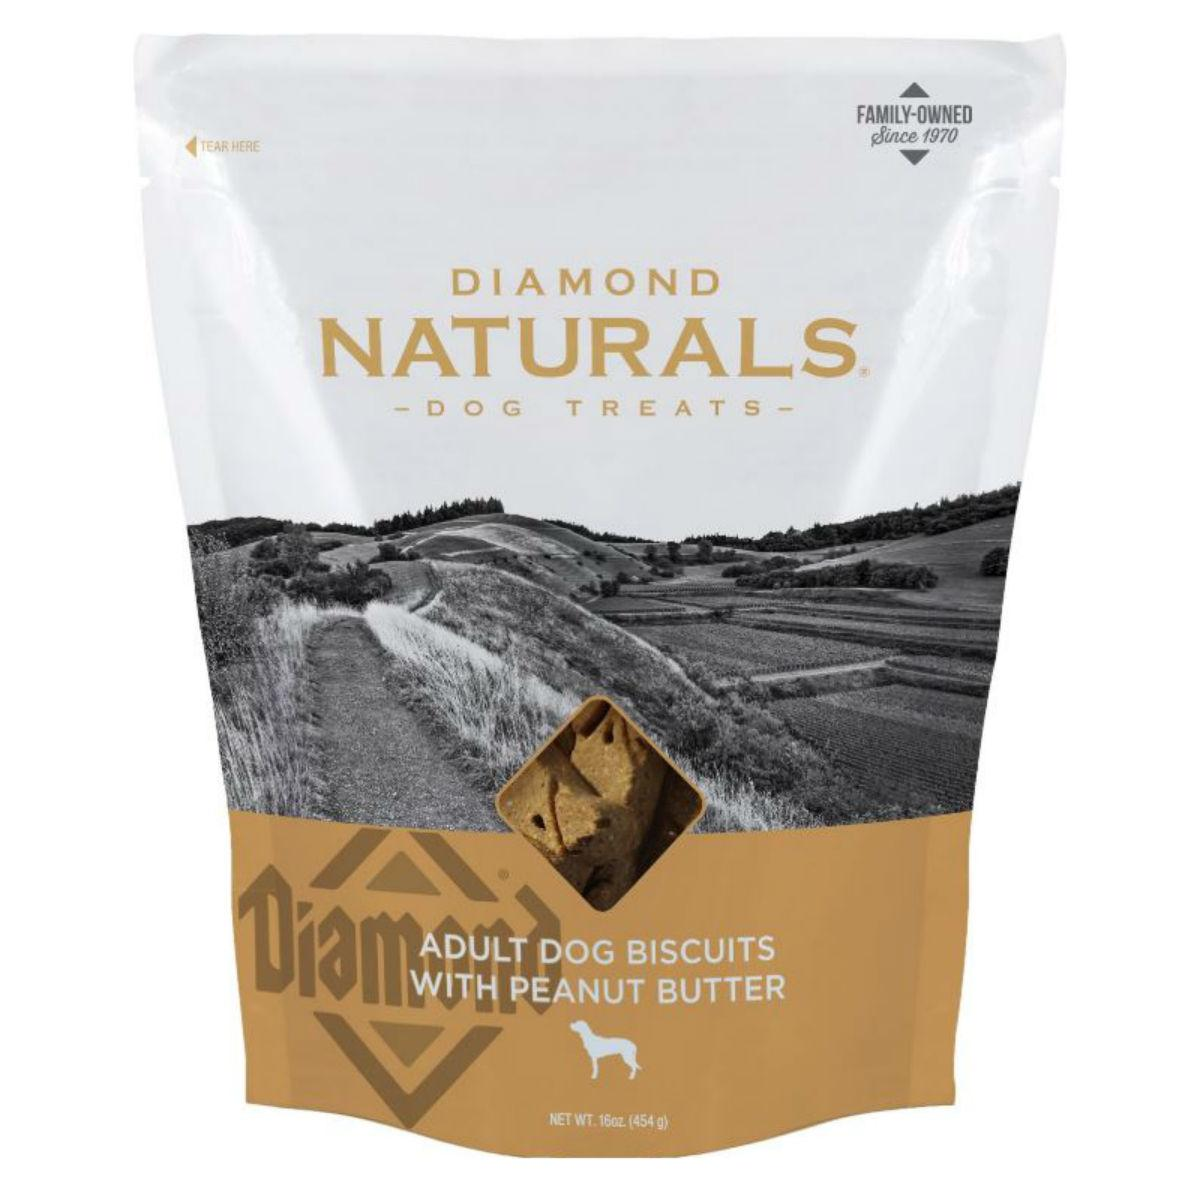 Diamond Naturals Adult Dog Biscuits - Peanut Butter